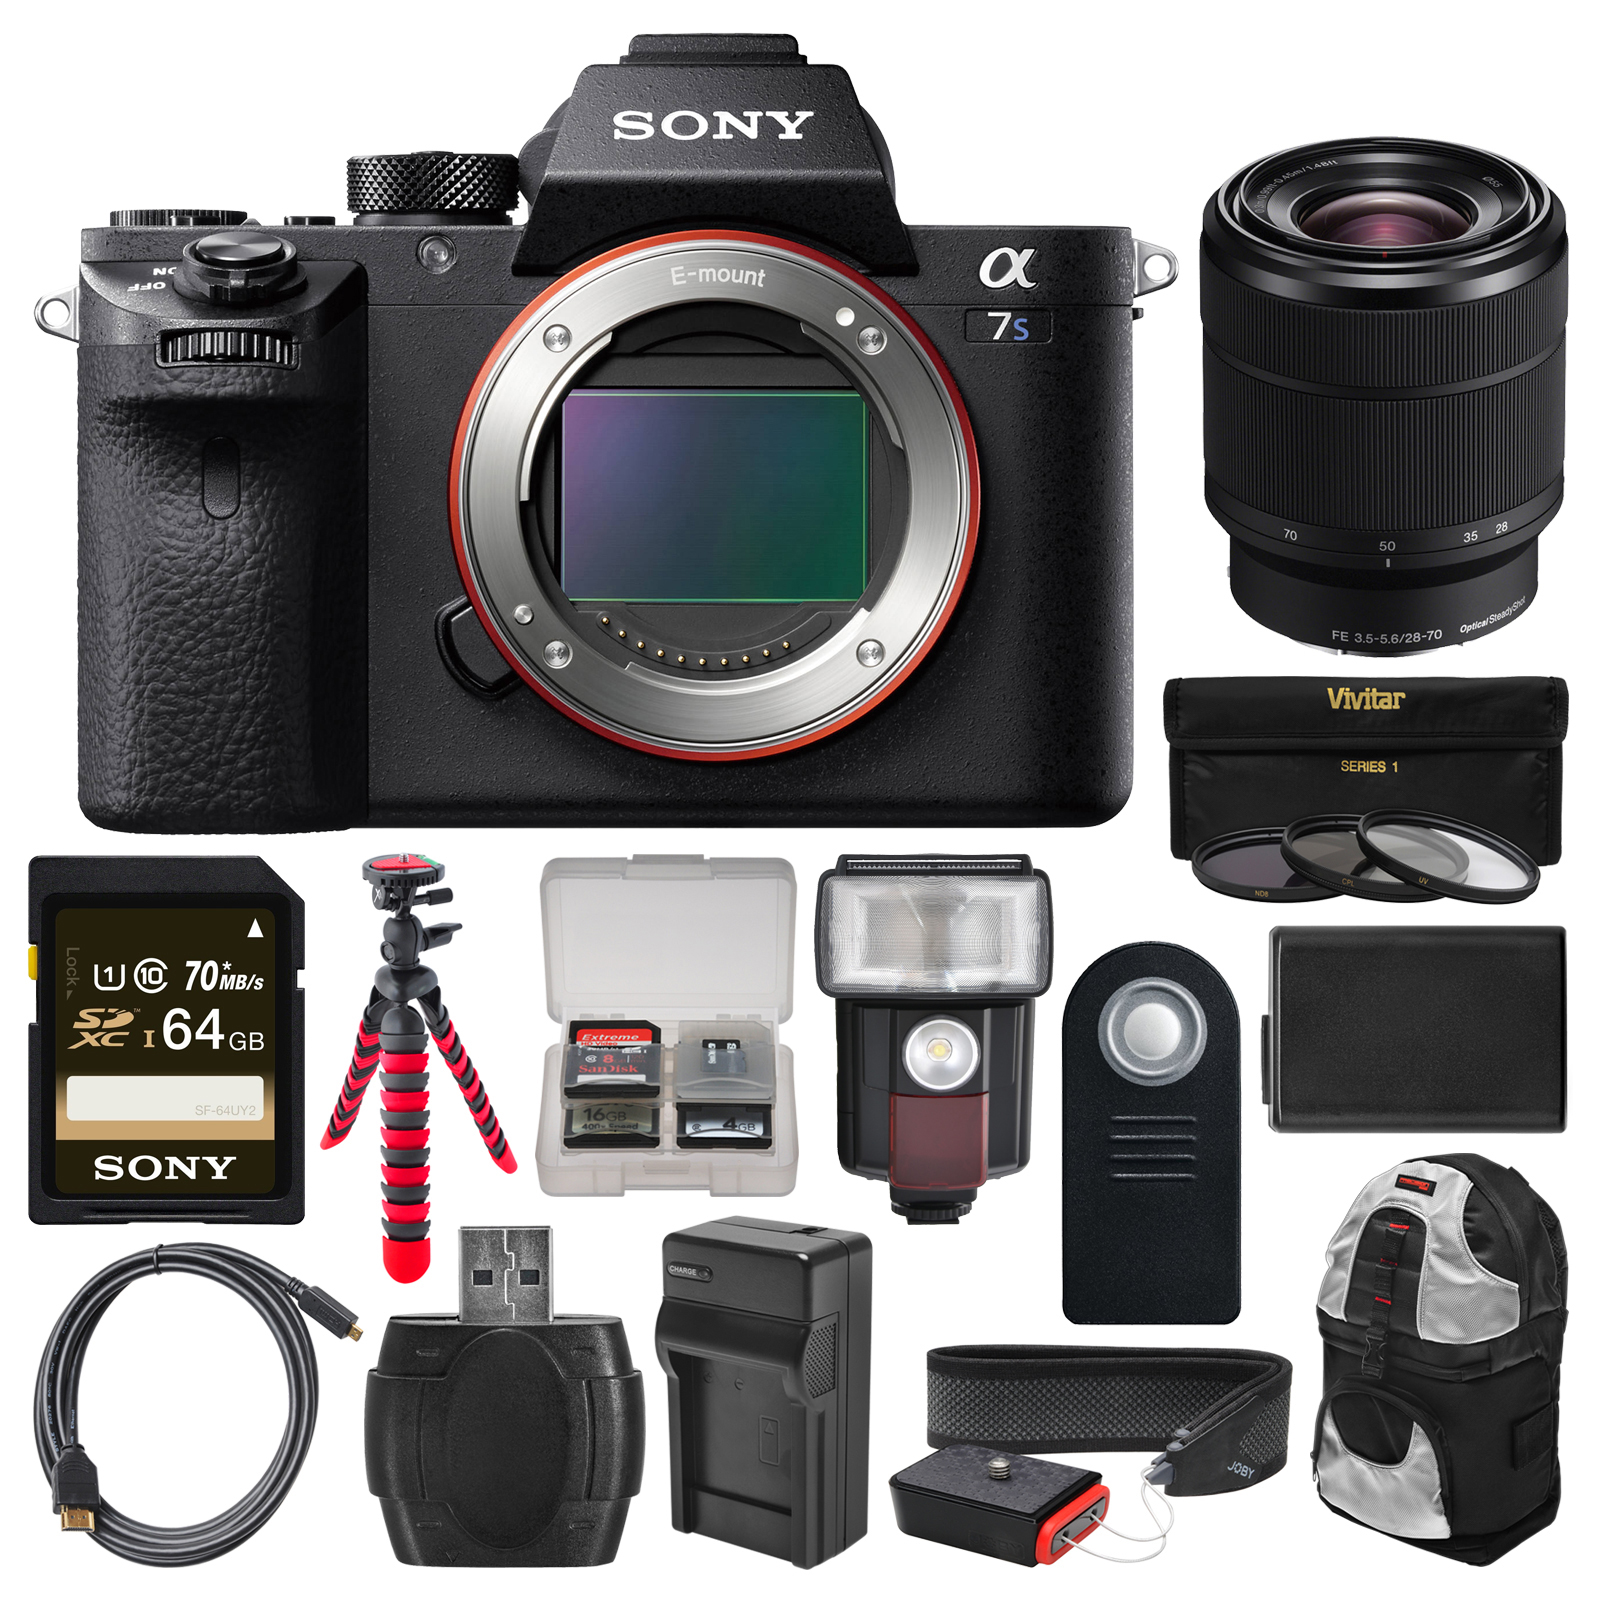 Sony Alpha A7S II 4K Wi-Fi Digital Camera Body with FE 28-70mm Lens + 64GB Card + Backpack + Flash + Battery &... by Sony